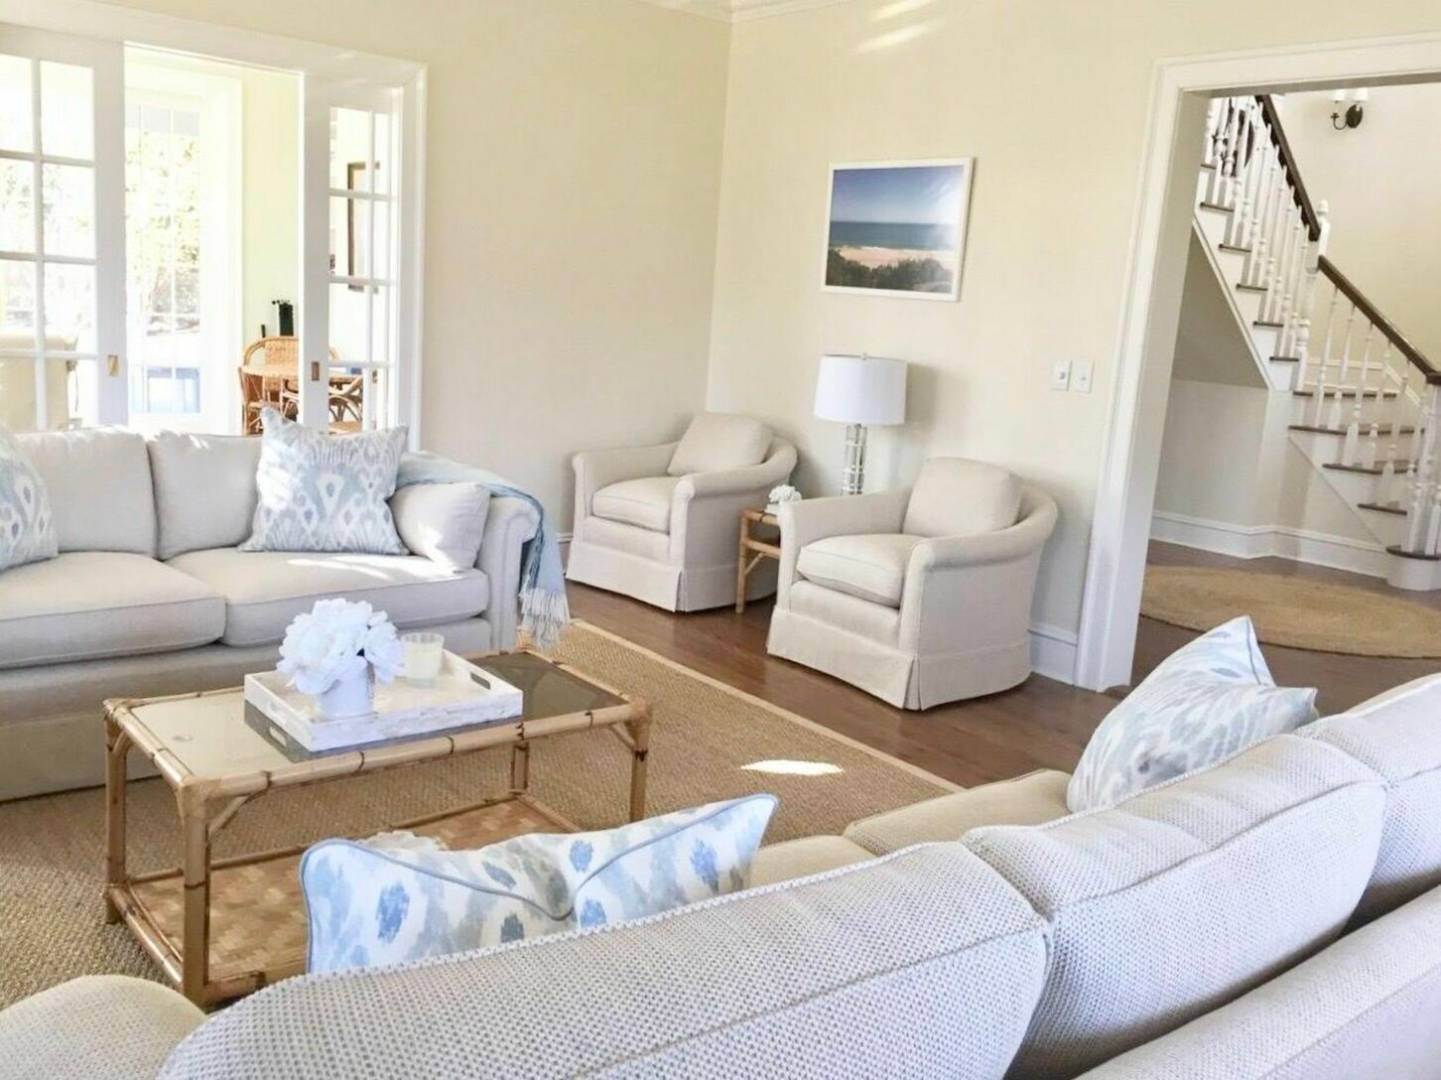 4. Single Family Home at Crisp And Beautifully Detailed Southampton Village Home Southampton, NY 11968